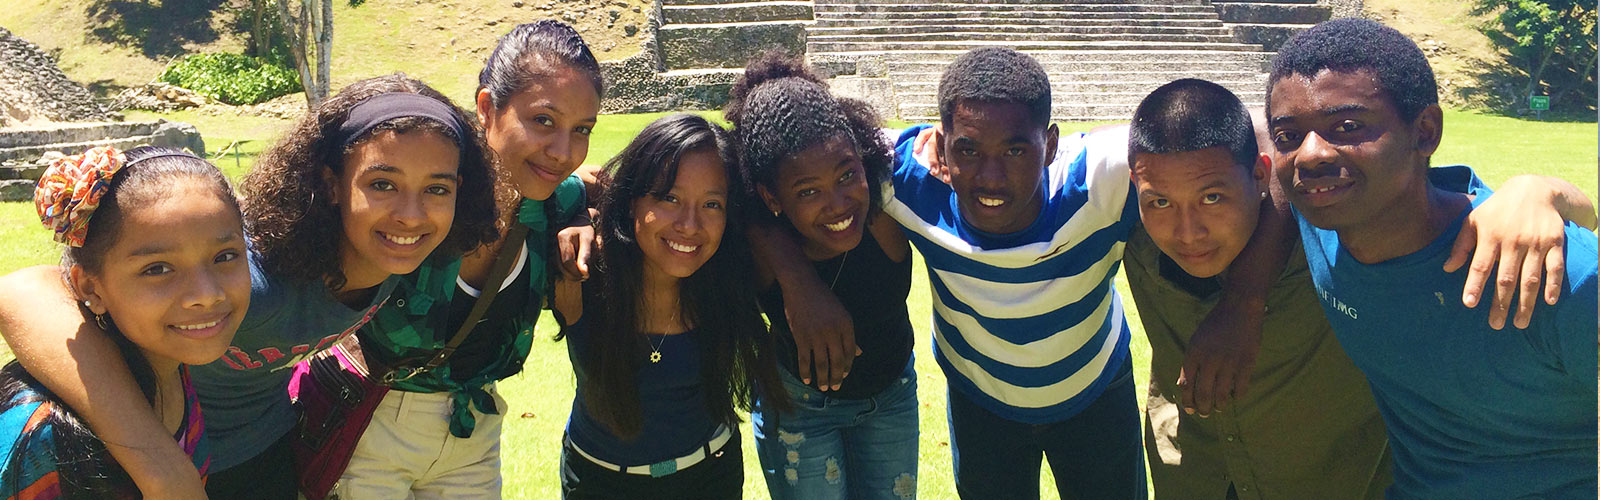 Belize Baha'i Youth